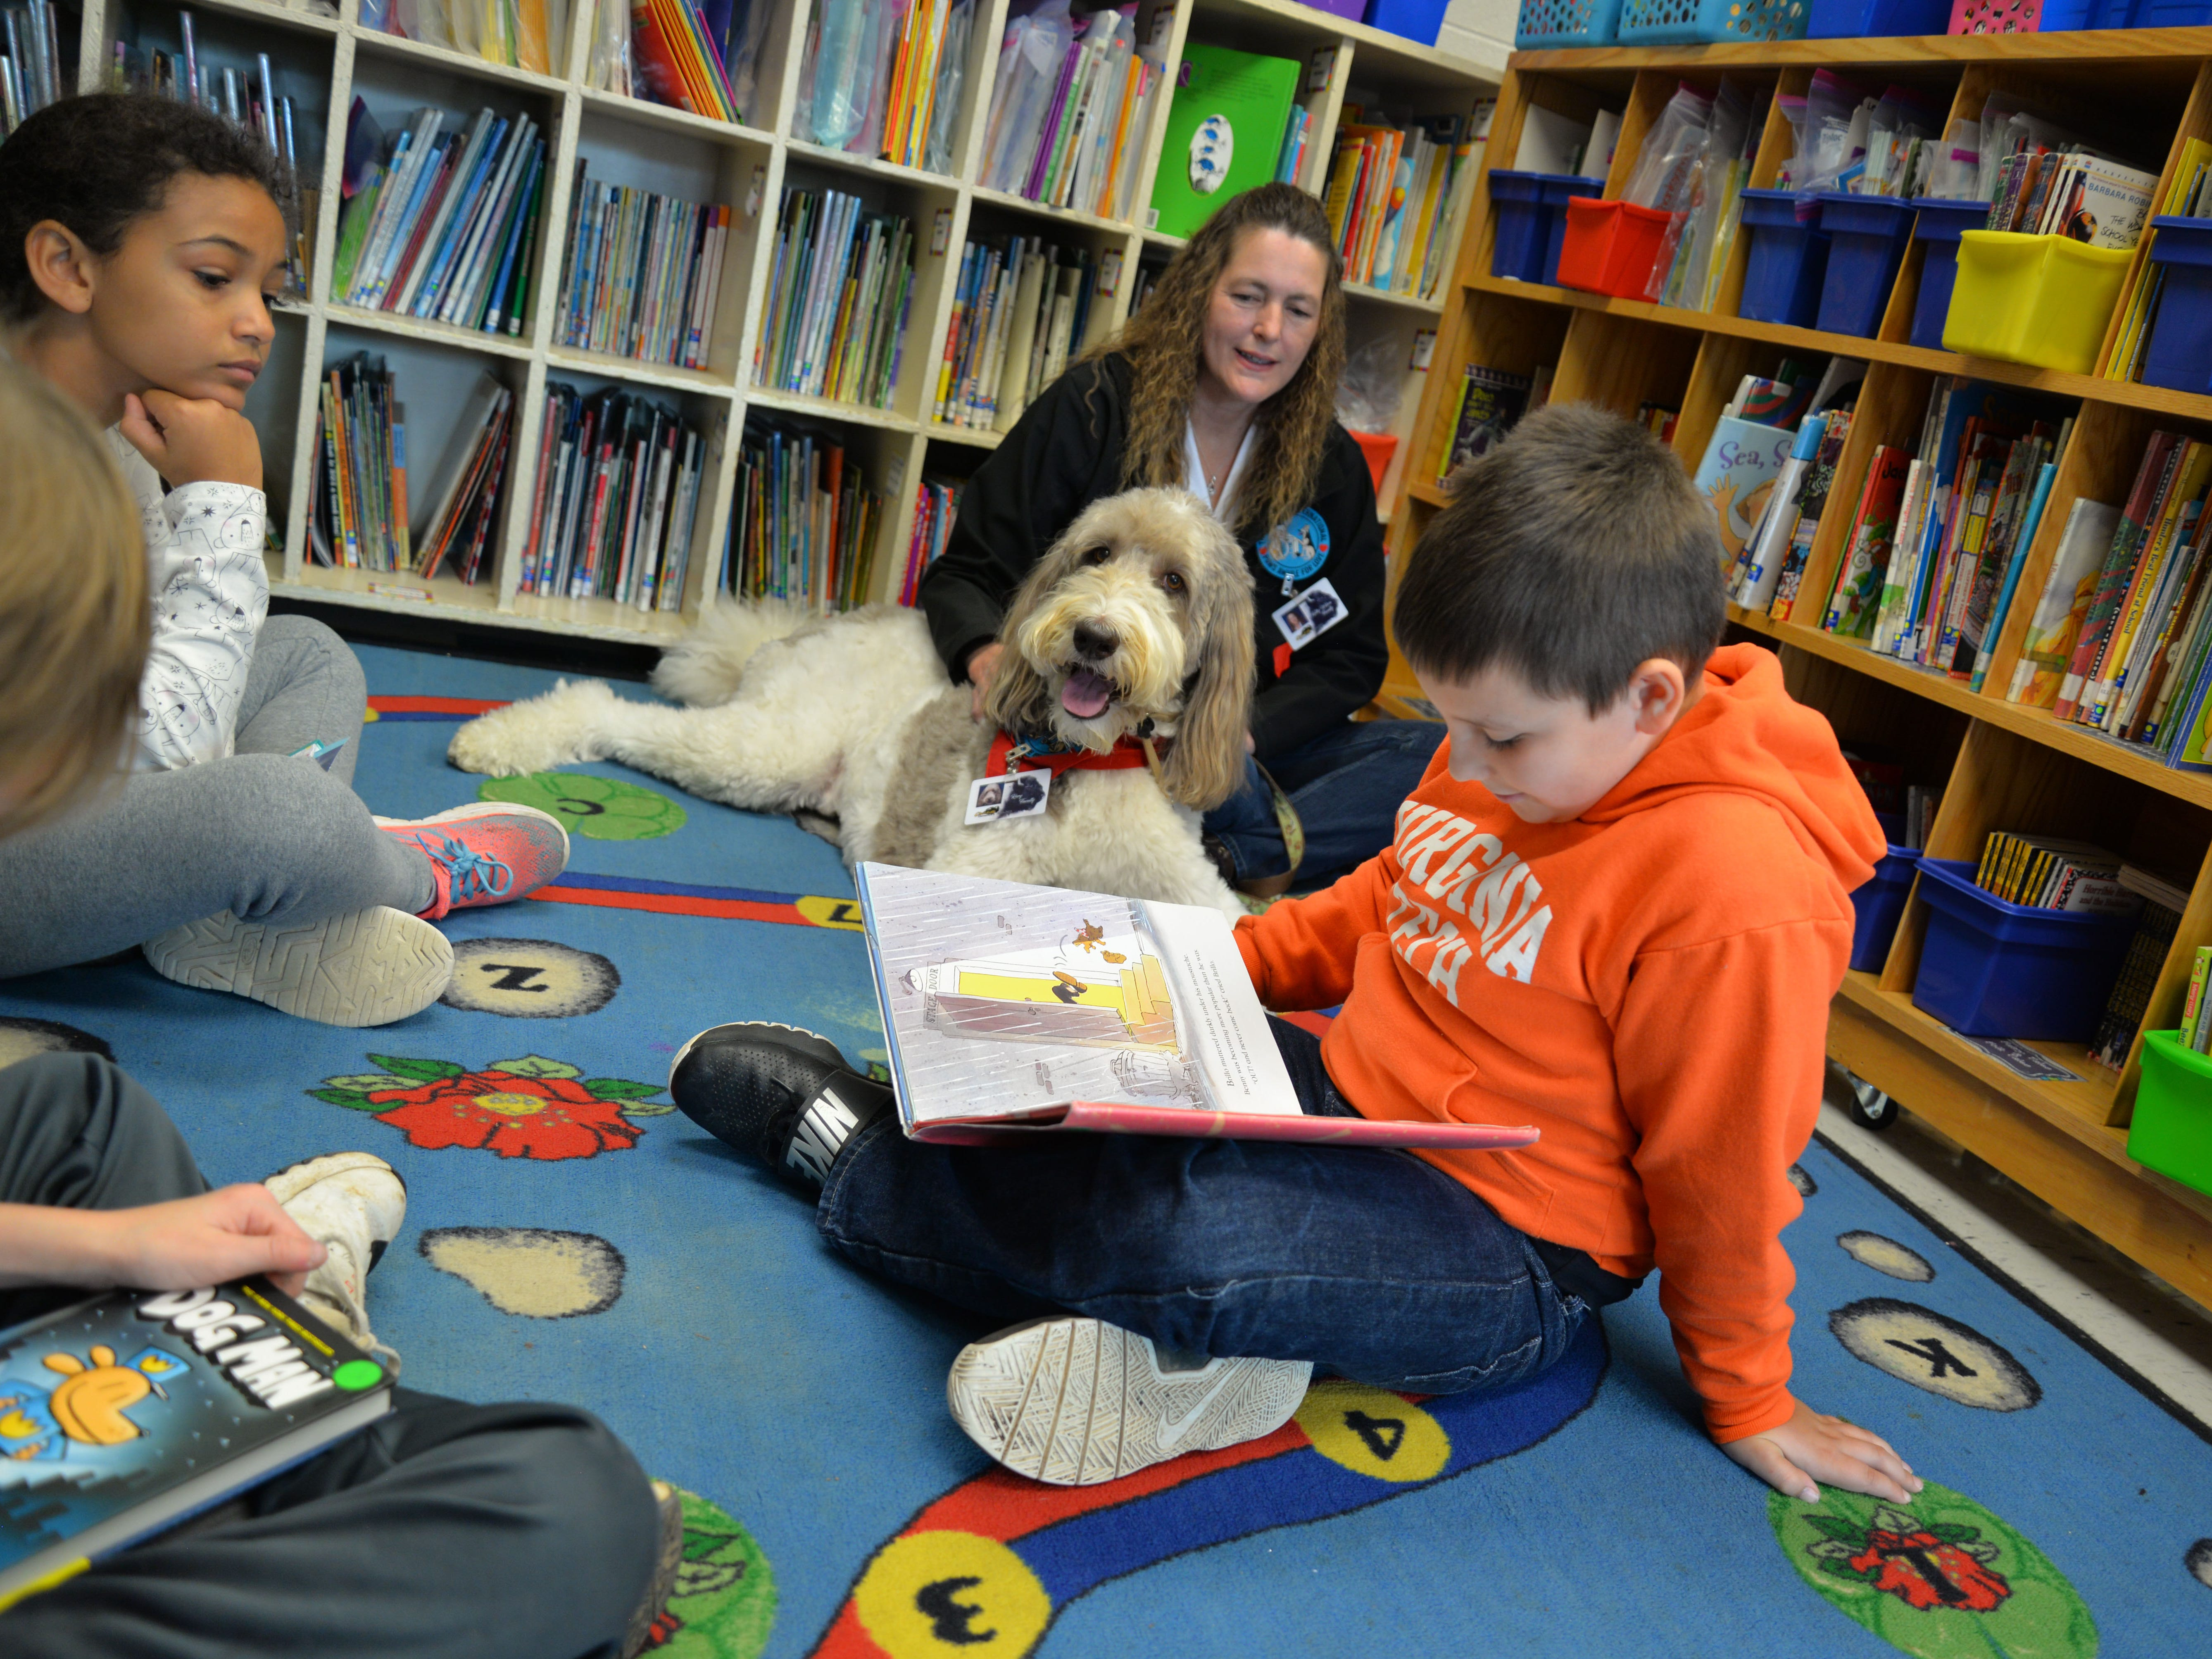 Kathleen Wilson and her labradoodle, Rory, visit Churchville Elementary once a week so students can read to the dog. Rory is a certified therapy dog and is allowed in any Augusta County School or school function. Here Rory is pictured with Mason Abshirine, 9 years old.